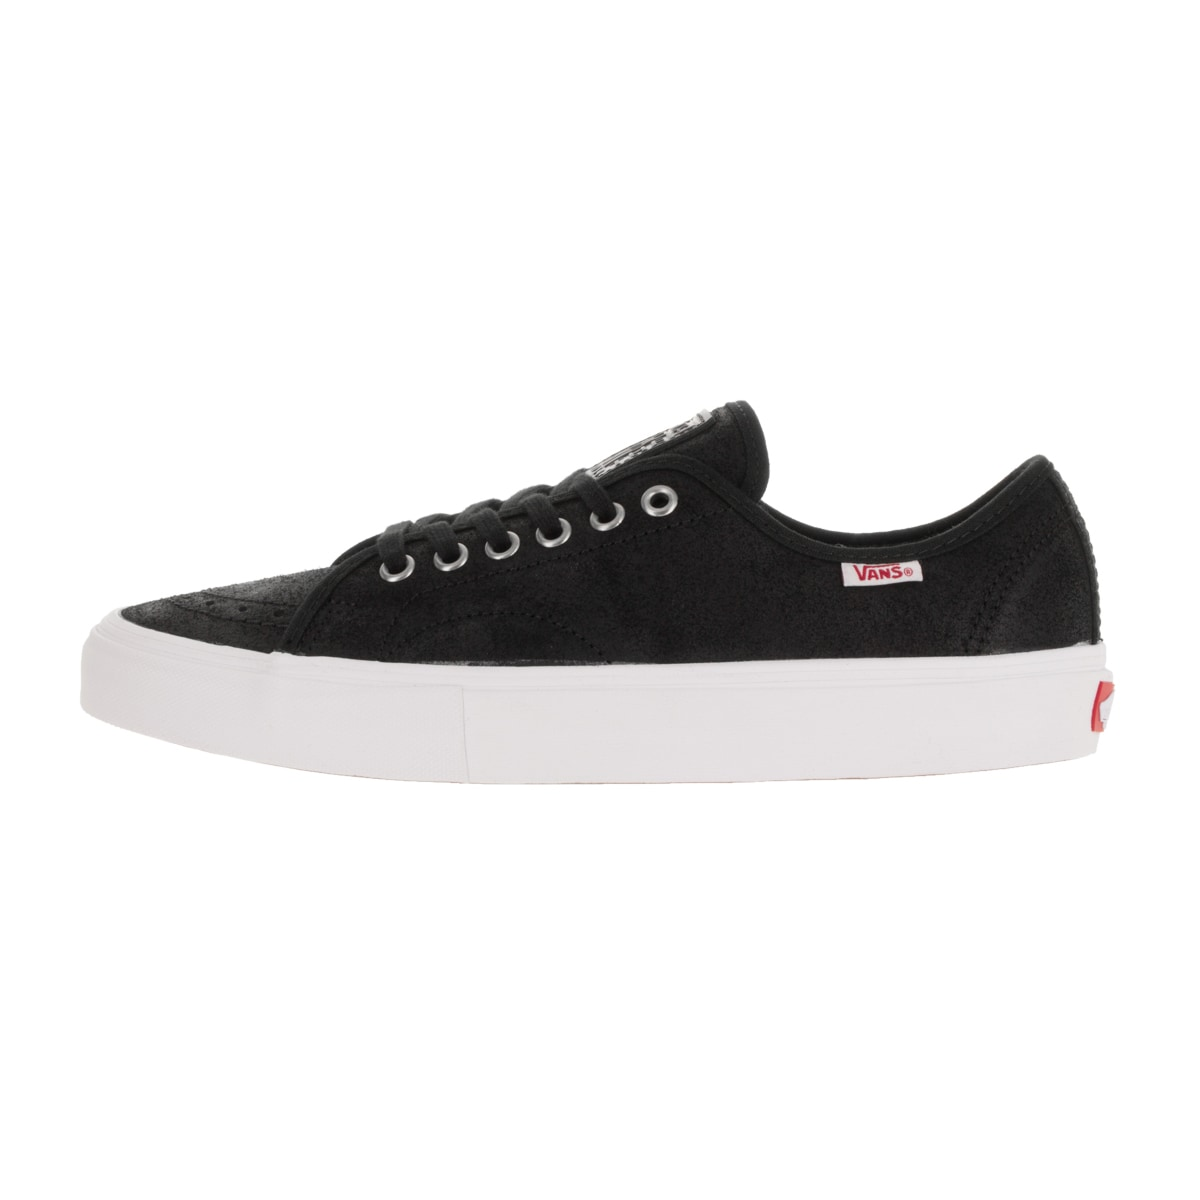 b90e5a6d7210 Shop Vans Men s  AV Classic  Black and White Oiled Suede Skate Shoes - Free  Shipping Today - Overstock.com - 13395500